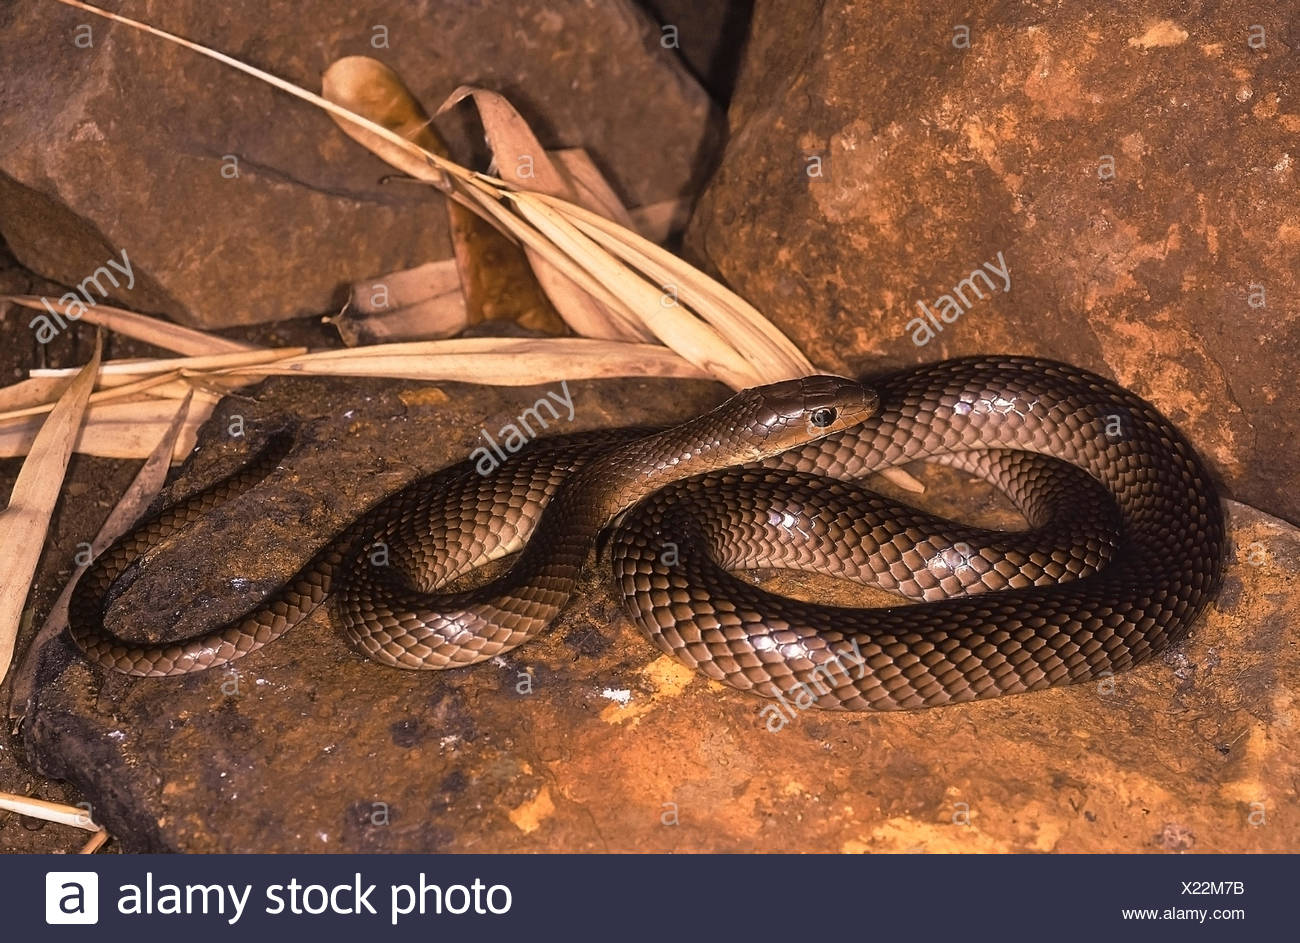 Psammophis longifrons STOUT SAND SNAKE. FULL BODY. VERY RARE. Harmless. Endemic to India. Photograph of an individual from Maharashtra, INDIA. - Stock Image